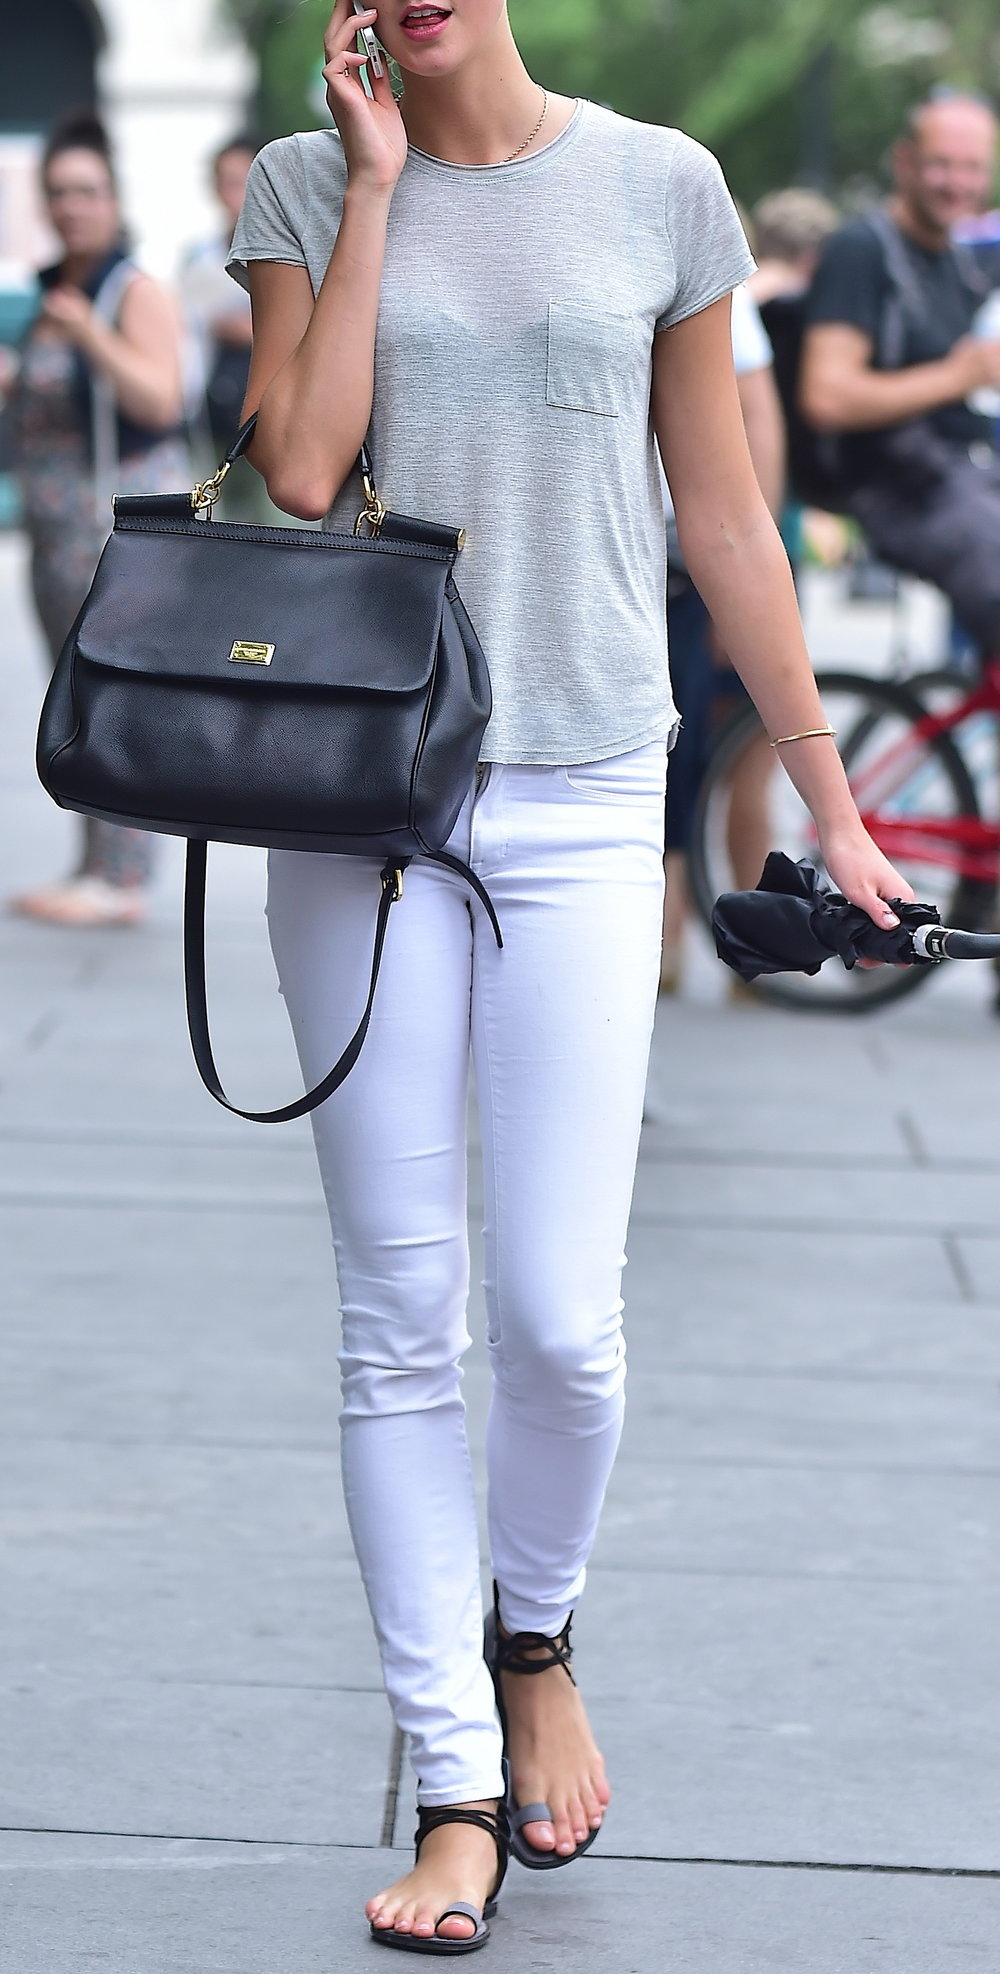 NEW YORK, NY - JULY 14:  Karlie Kloss is seen in Tribeca